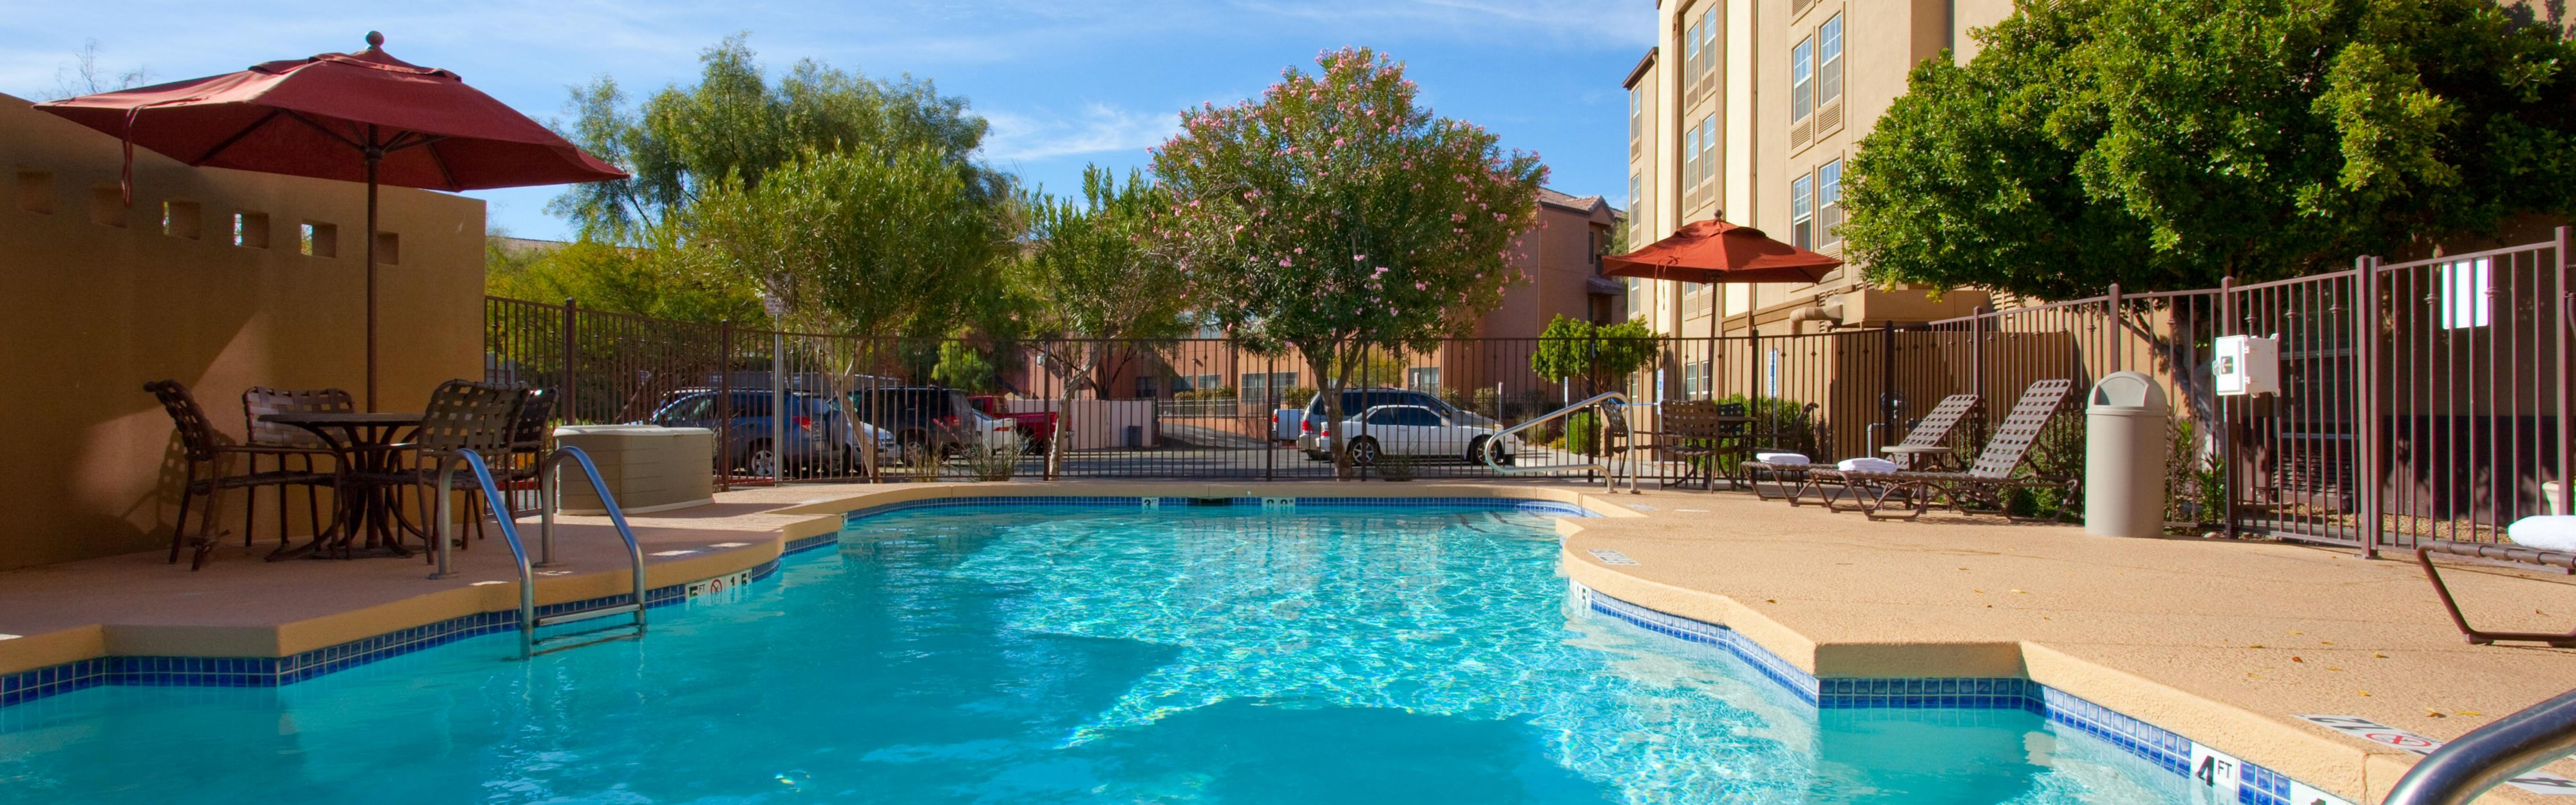 Holiday Inn Express & Suites Phoenix Airport image 2